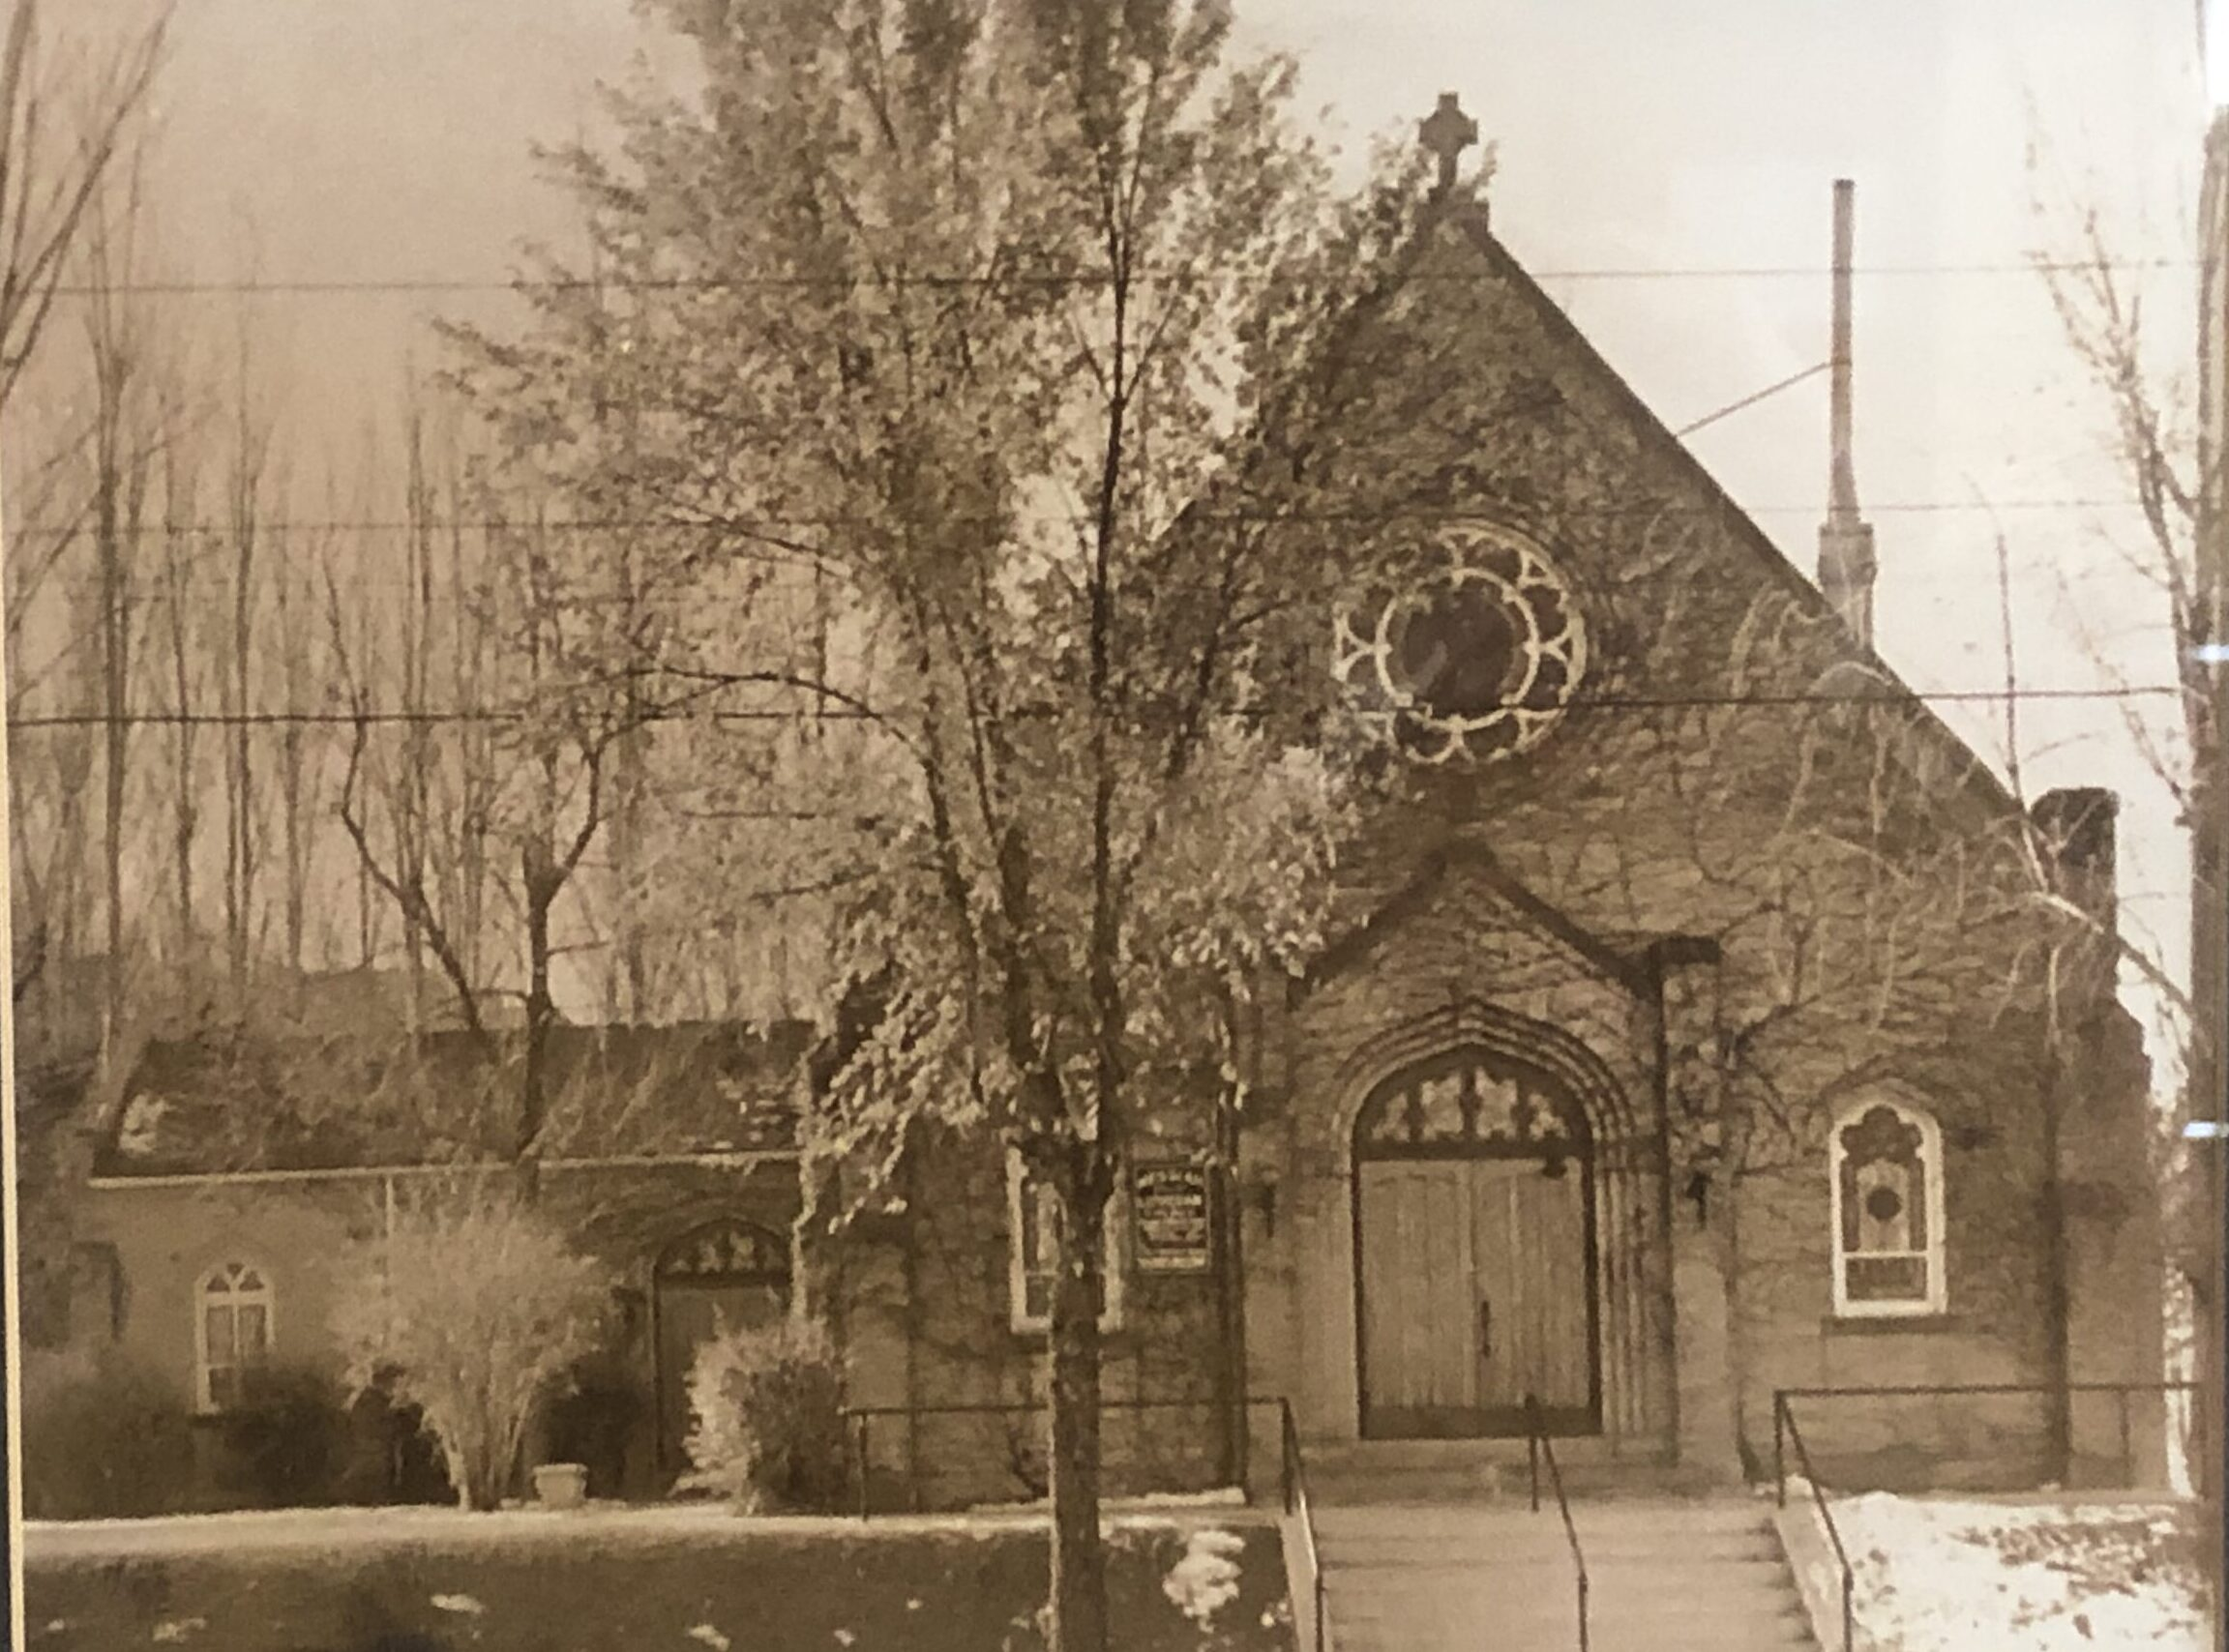 Original church building at Elizabeth and Colfax in Denver